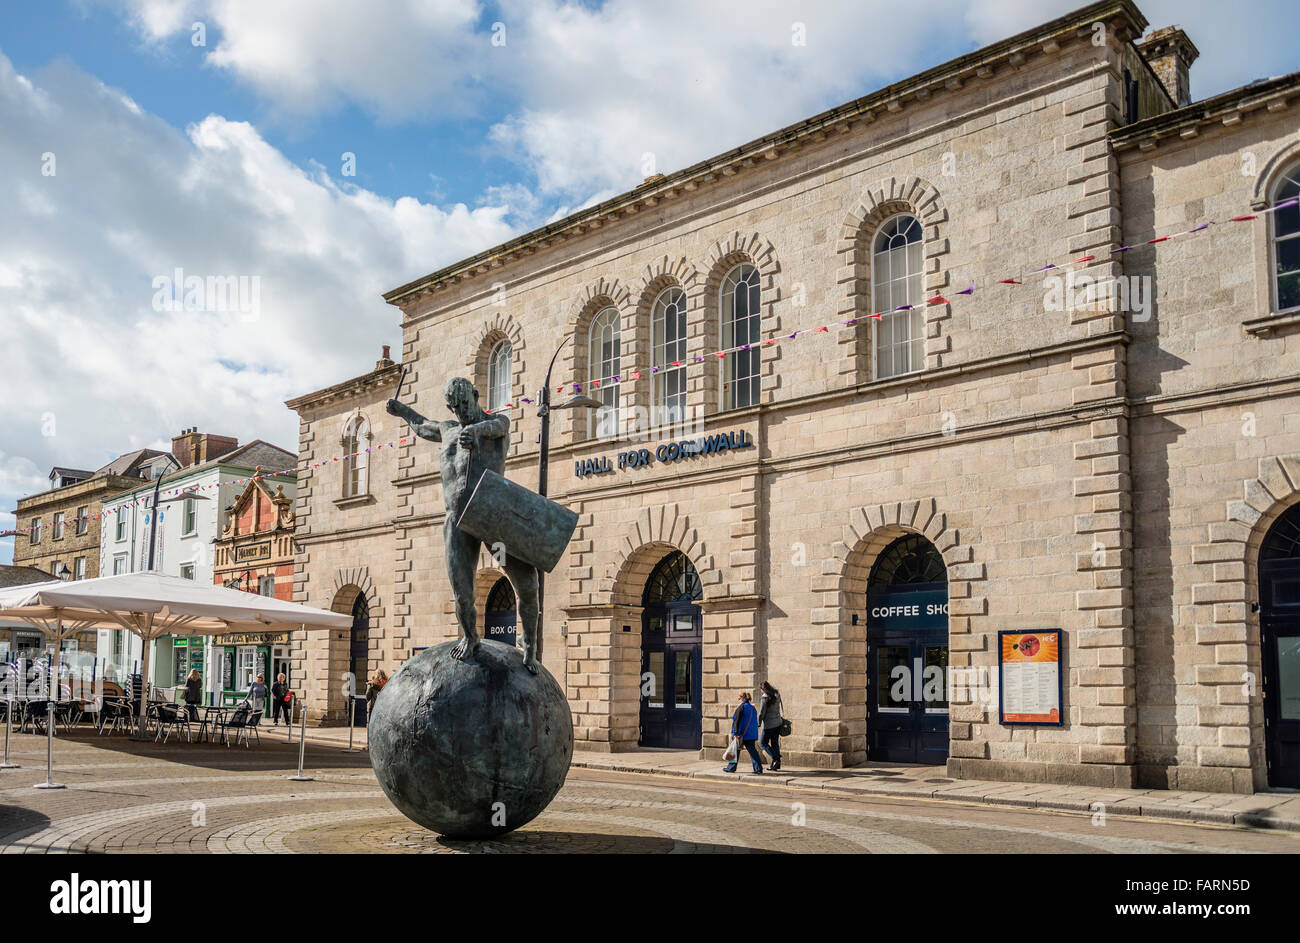 Bronze sculpture of a drummer by Tim Shaw in front of Hall of Cornwall, Truro, England, UK - Stock Image